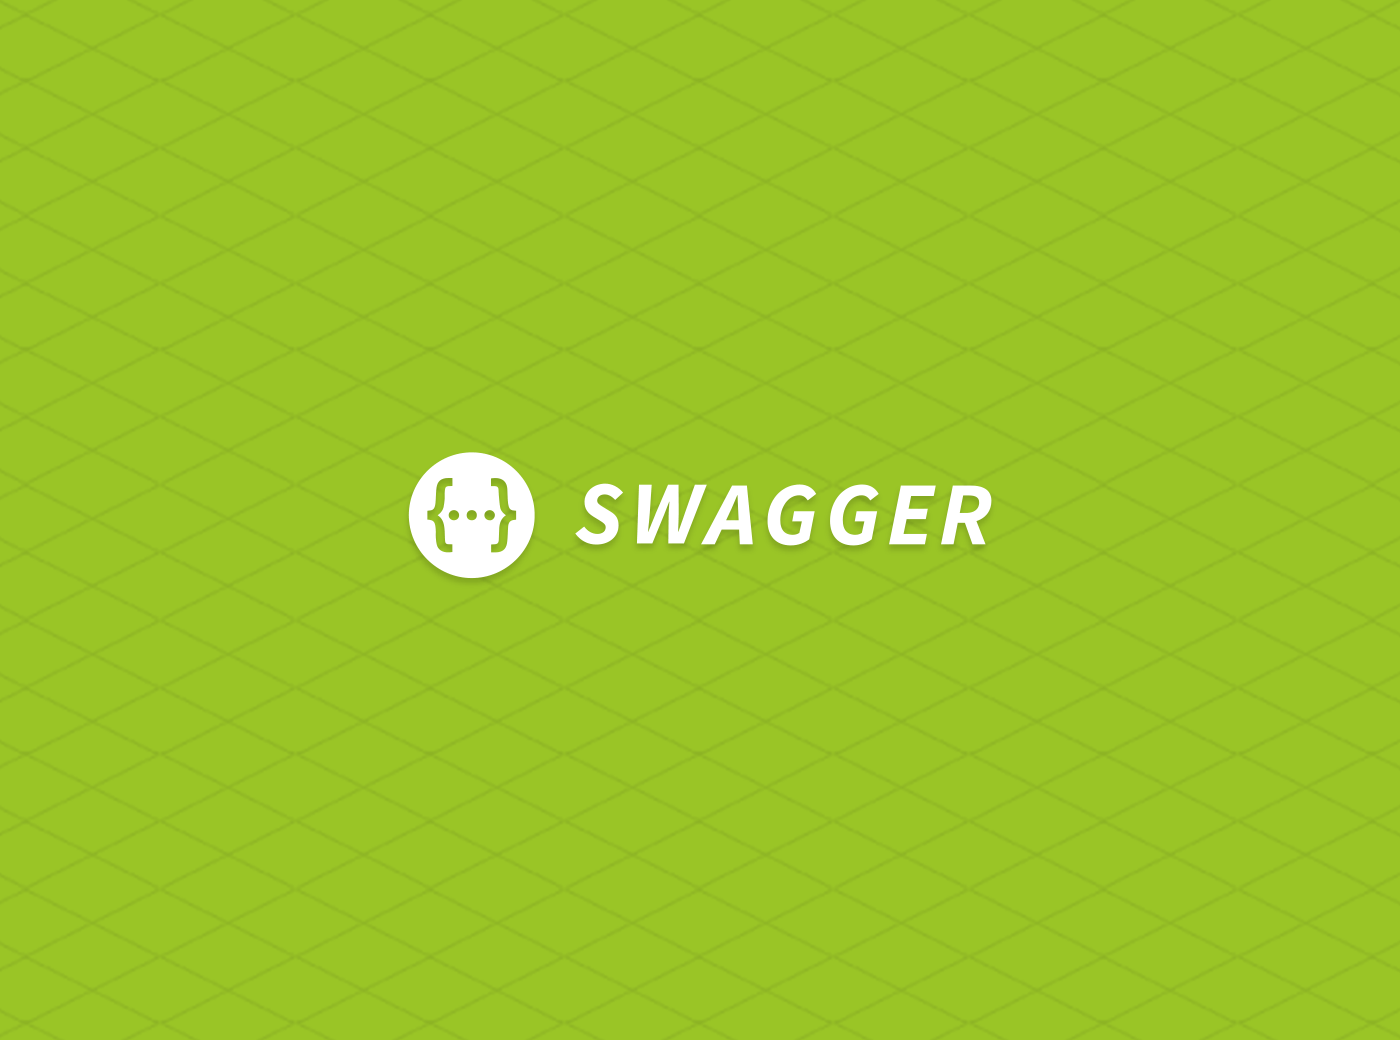 Microsoft Azure + Swagger: The Step by Step Guide   LightBuzz